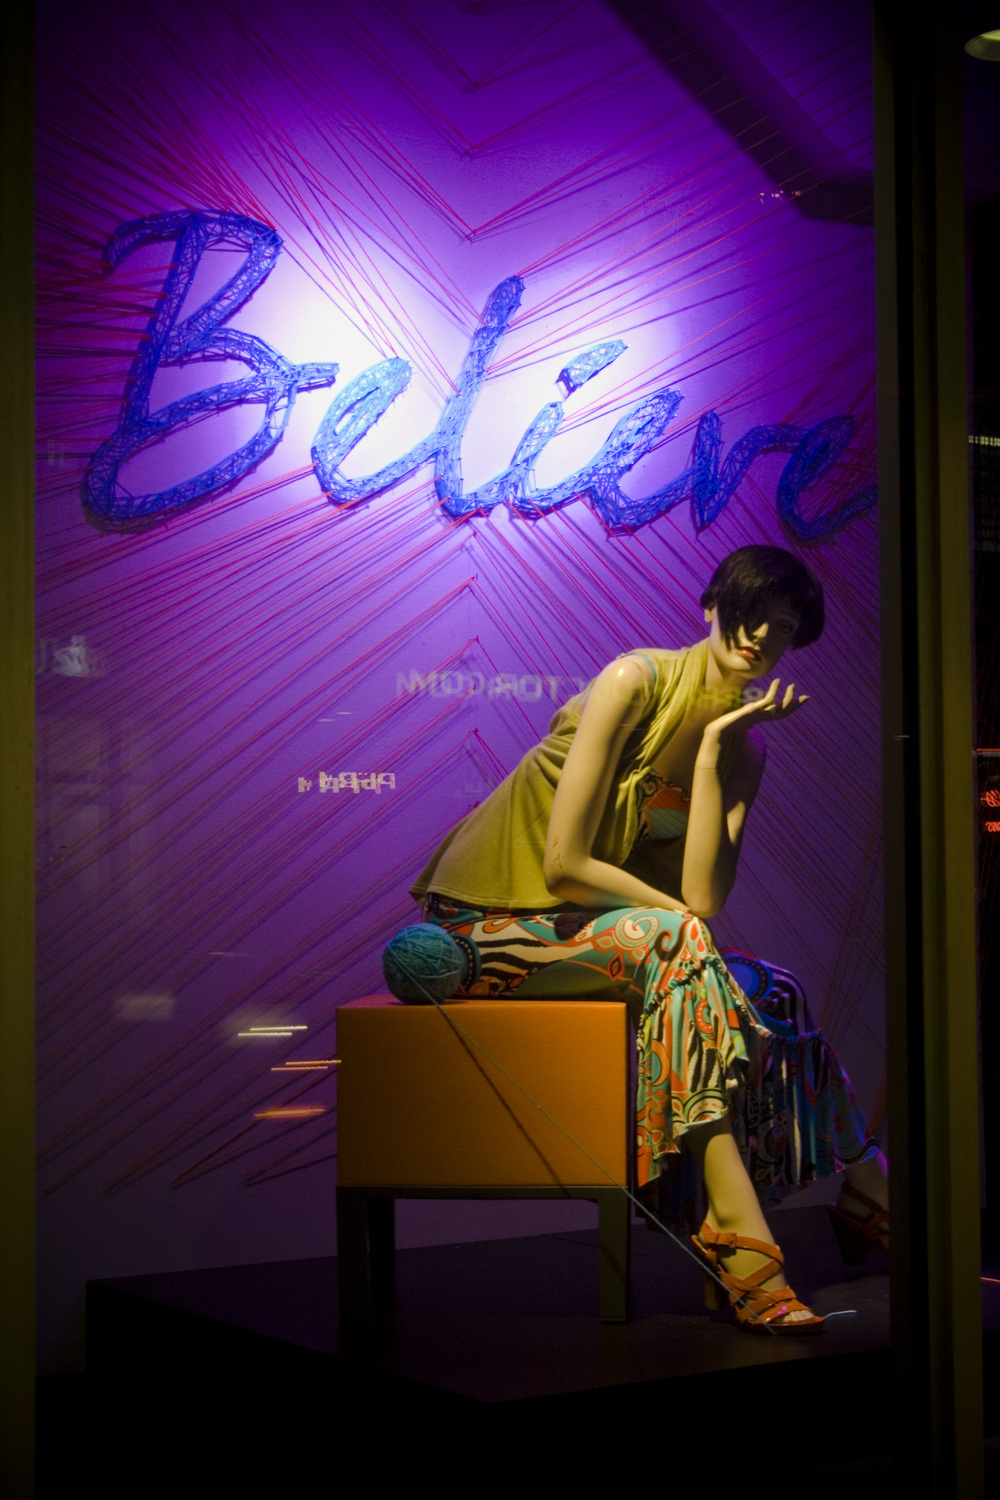 believe-give-by-camilorojas (9).jpg